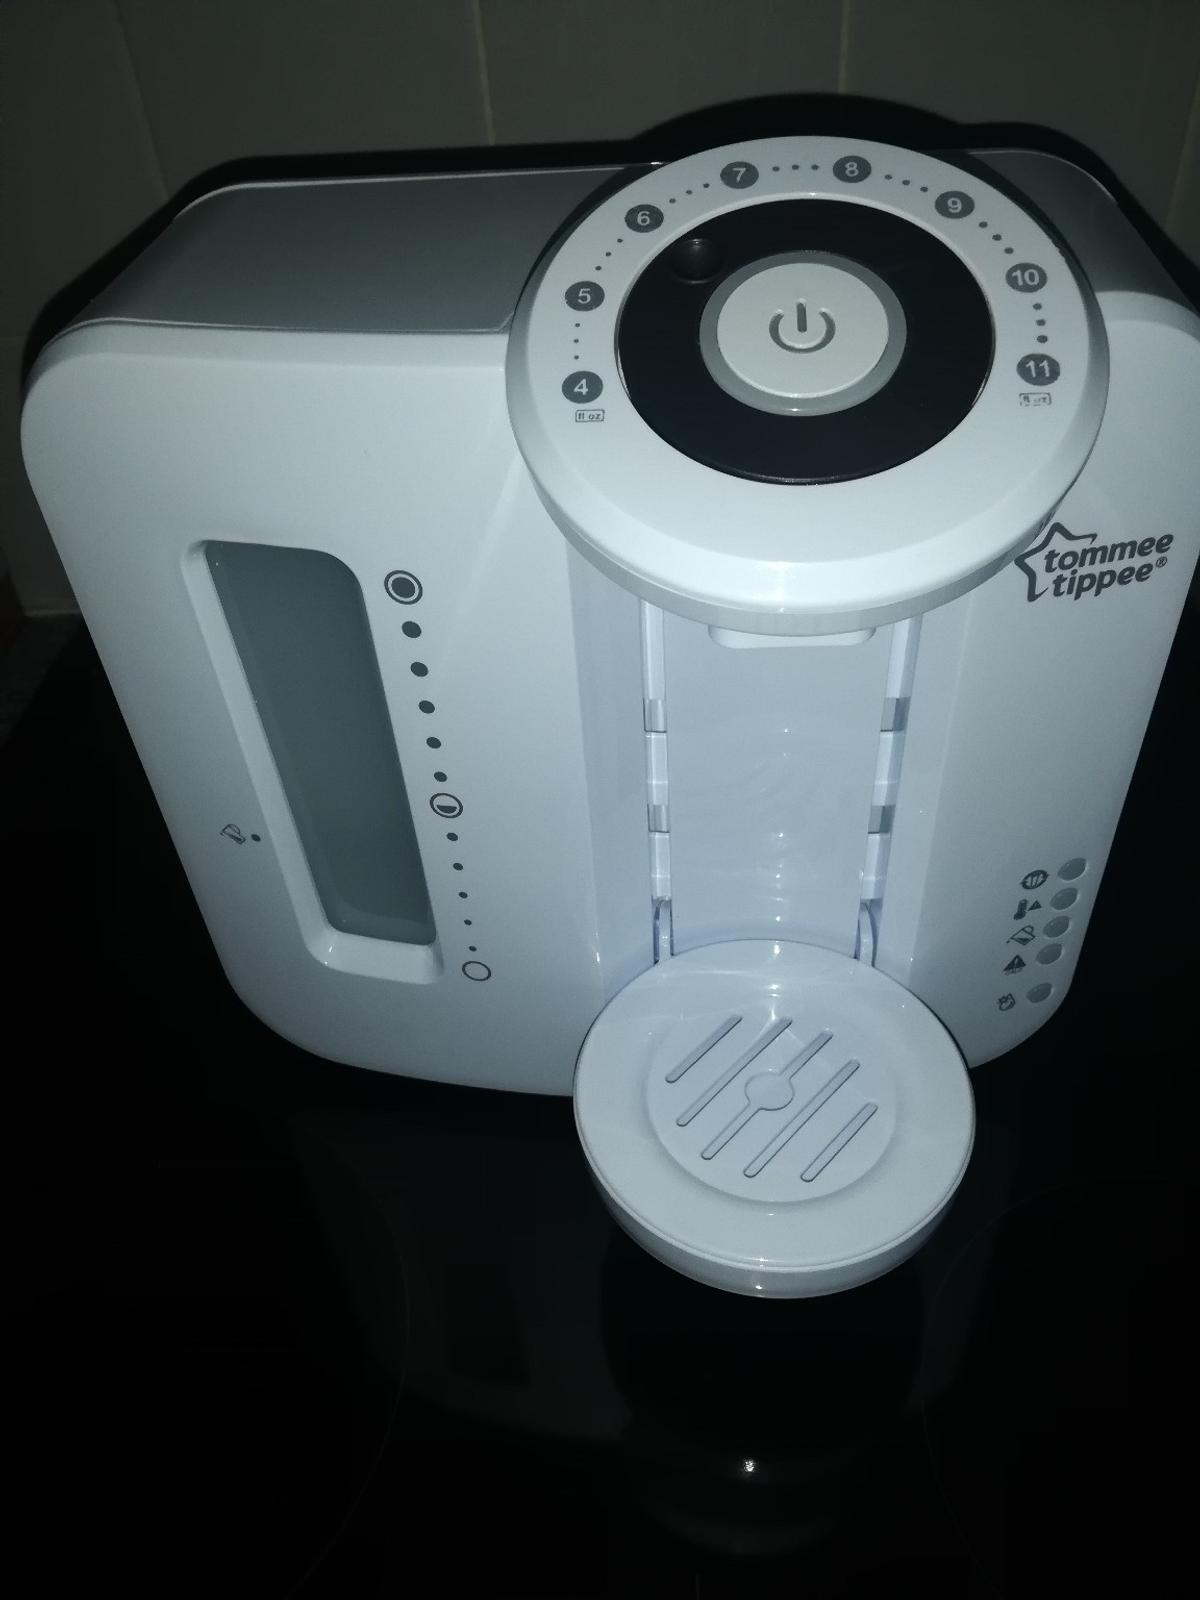 Good condition, needs new filter available at supermarkets (Tescos £5) Must have for a new baby makes feeding a dream. Also have a Tommy Tippee breast pump £25 only used 2 times due to bottle feeding. Can do a deal if buying both Collection or post ( will need to cover postage costs though )